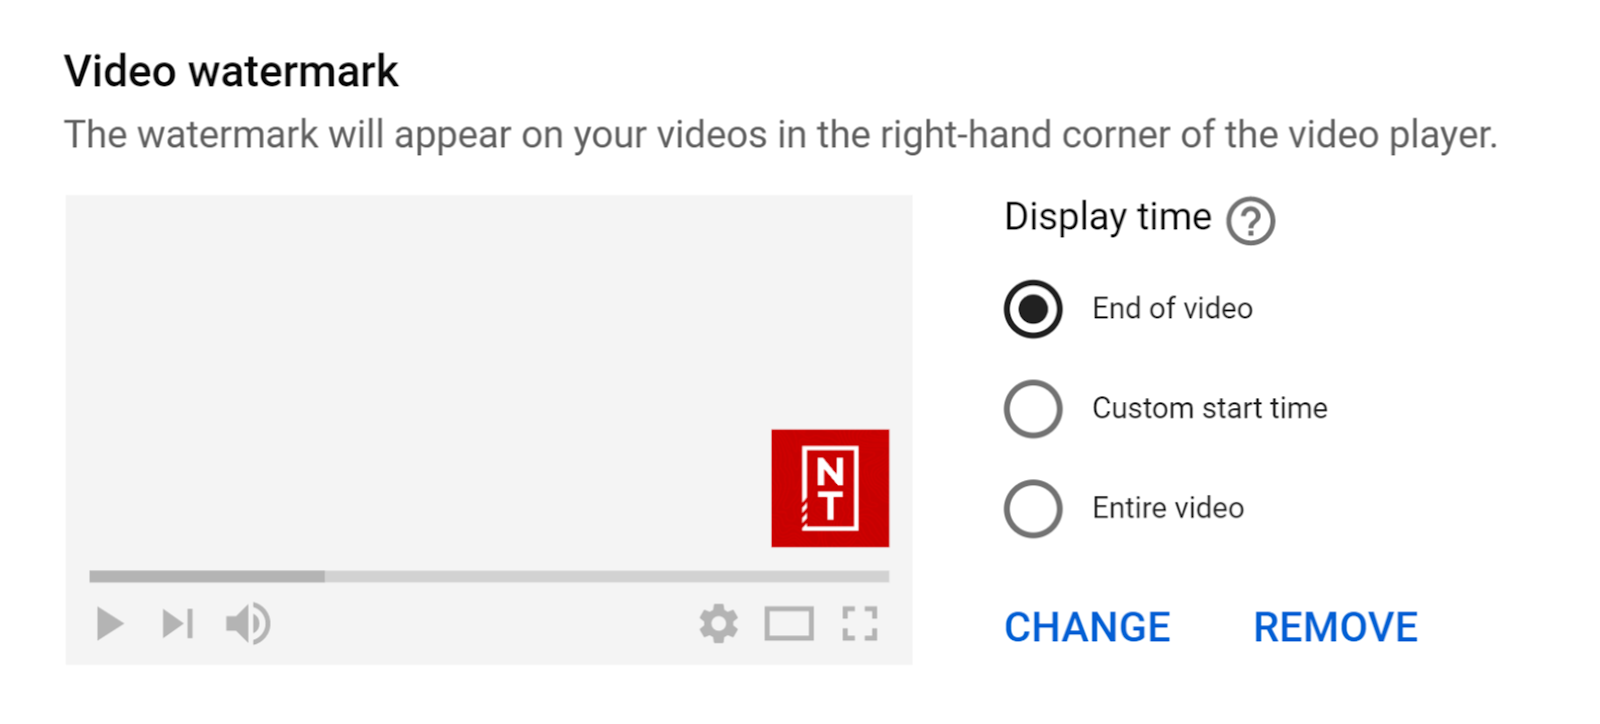 Video watermark for YouTube